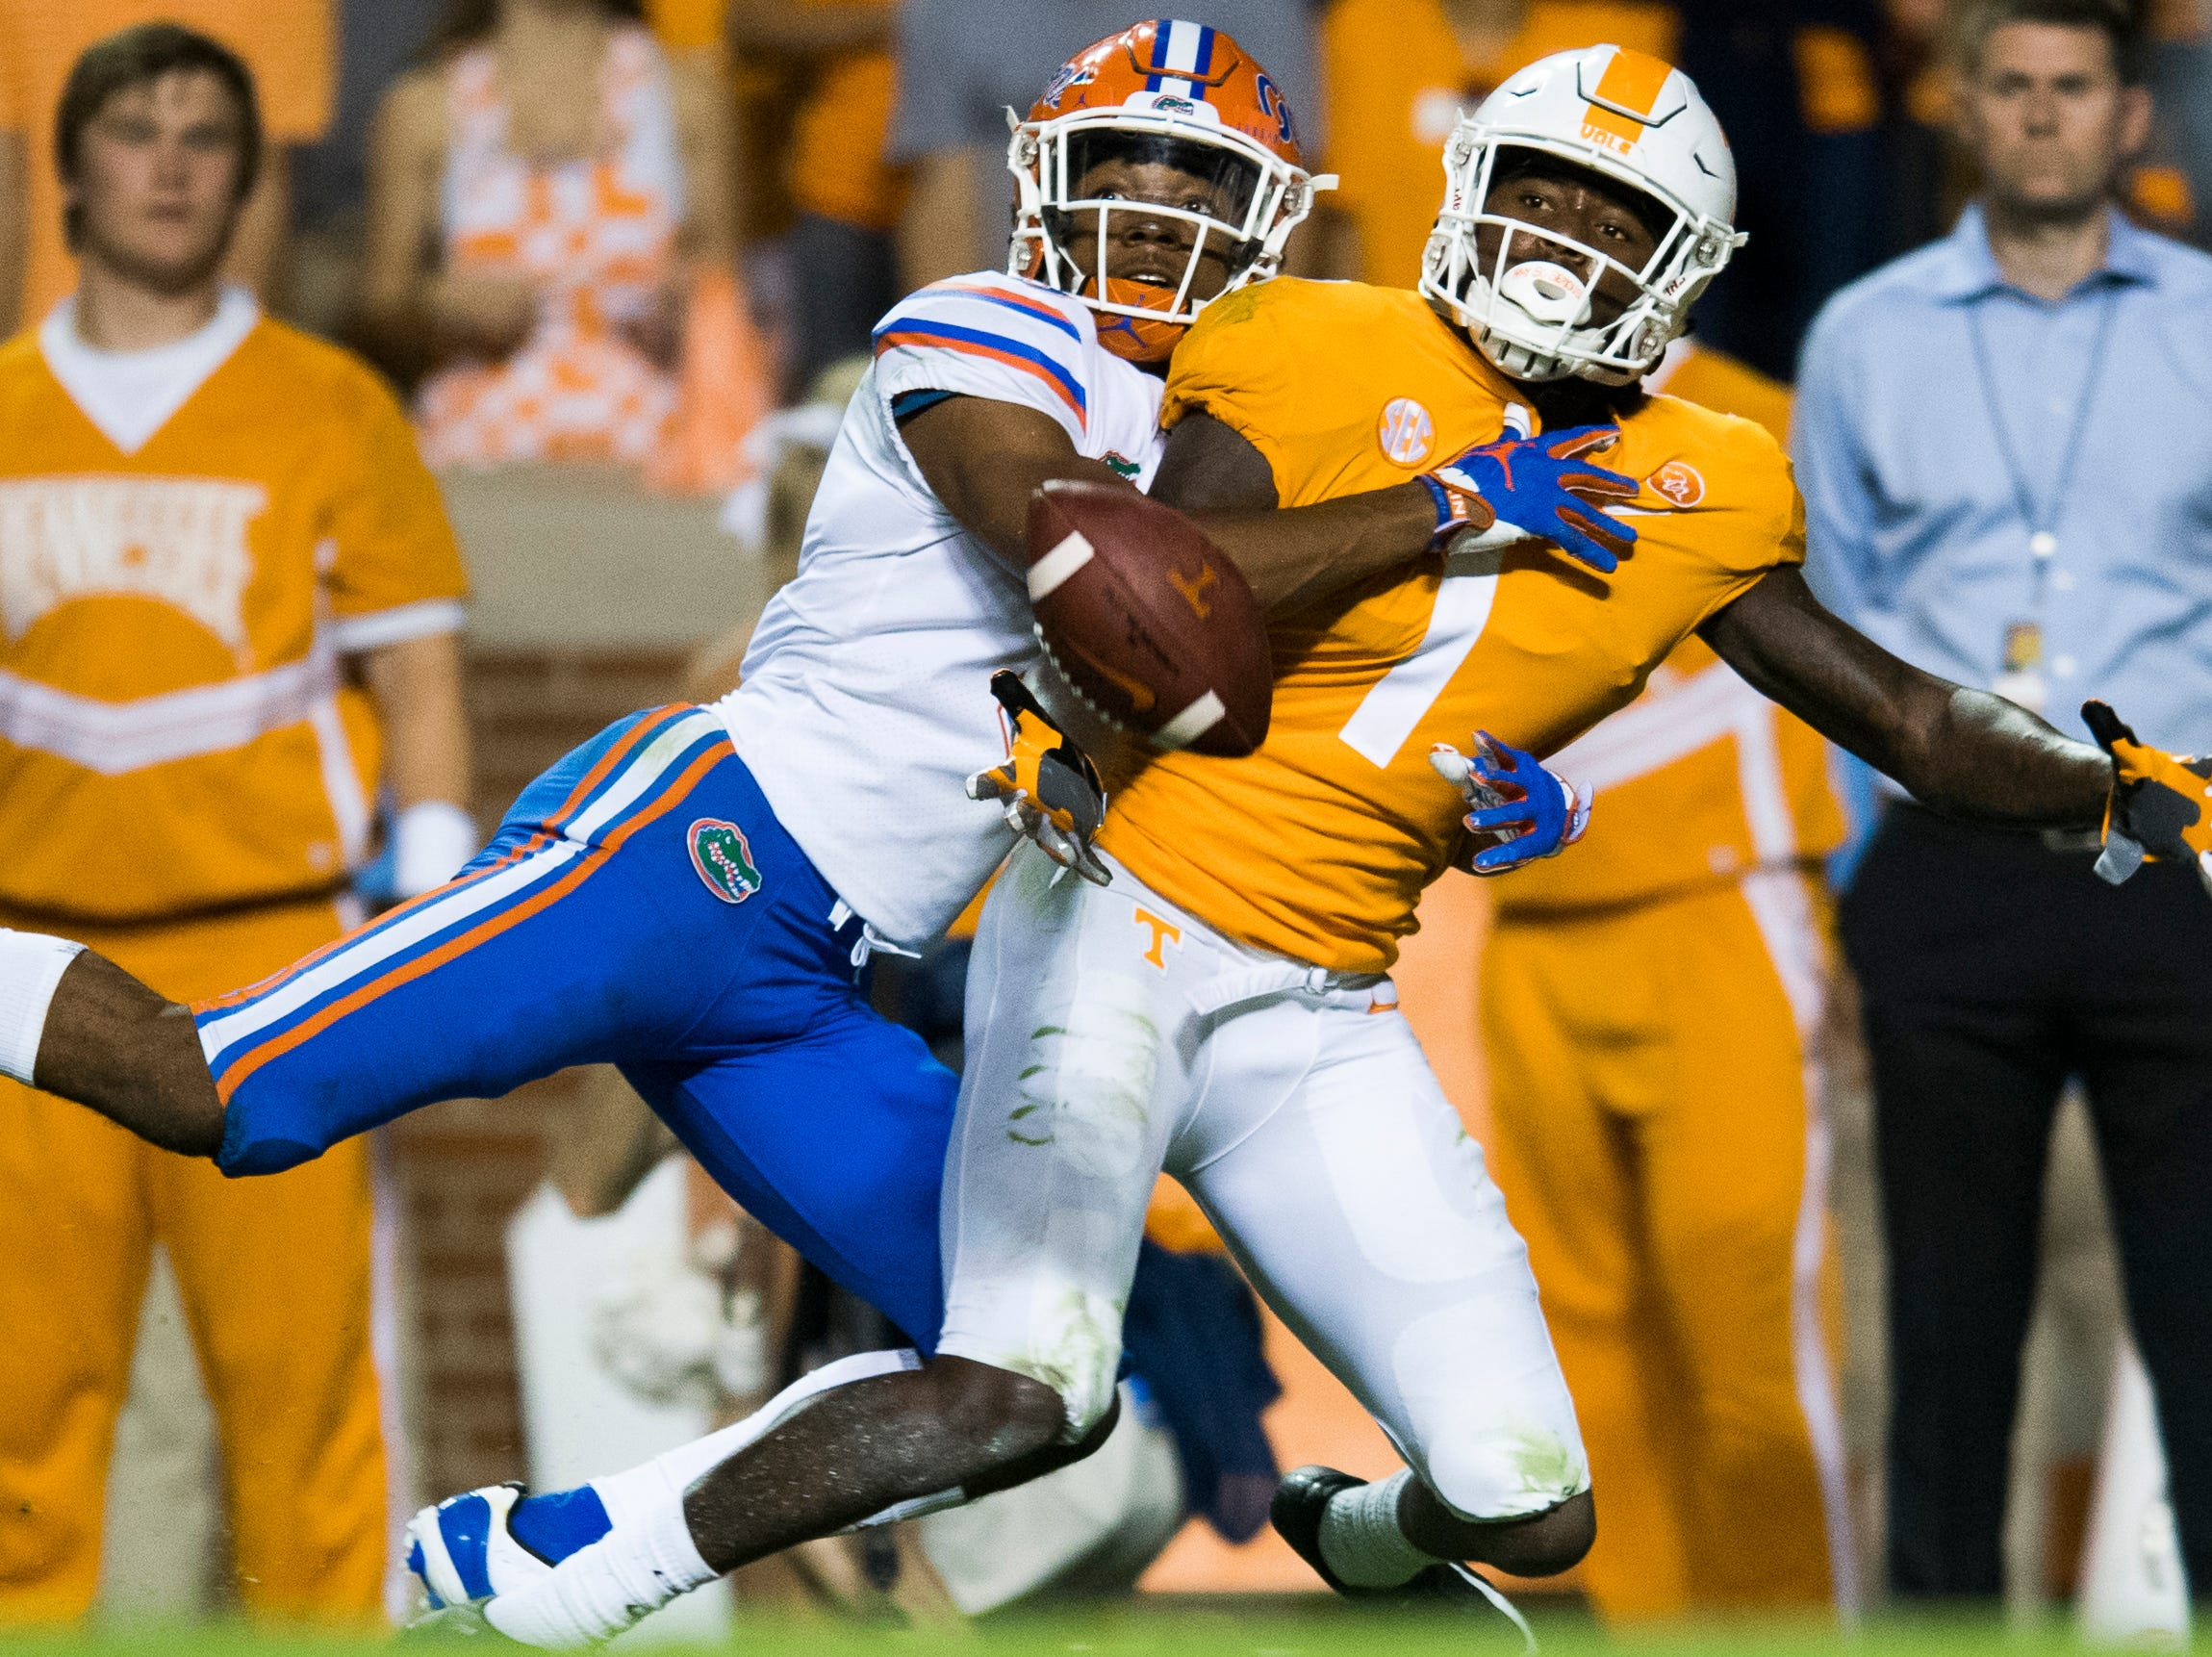 Florida defensive back Marco Wilson (3) denies Tennessee wide receiver Marquez Callaway (1) the pass during a game between Tennessee and Florida at Neyland Stadium in Knoxville, Tennessee on Saturday, September 22, 2018.